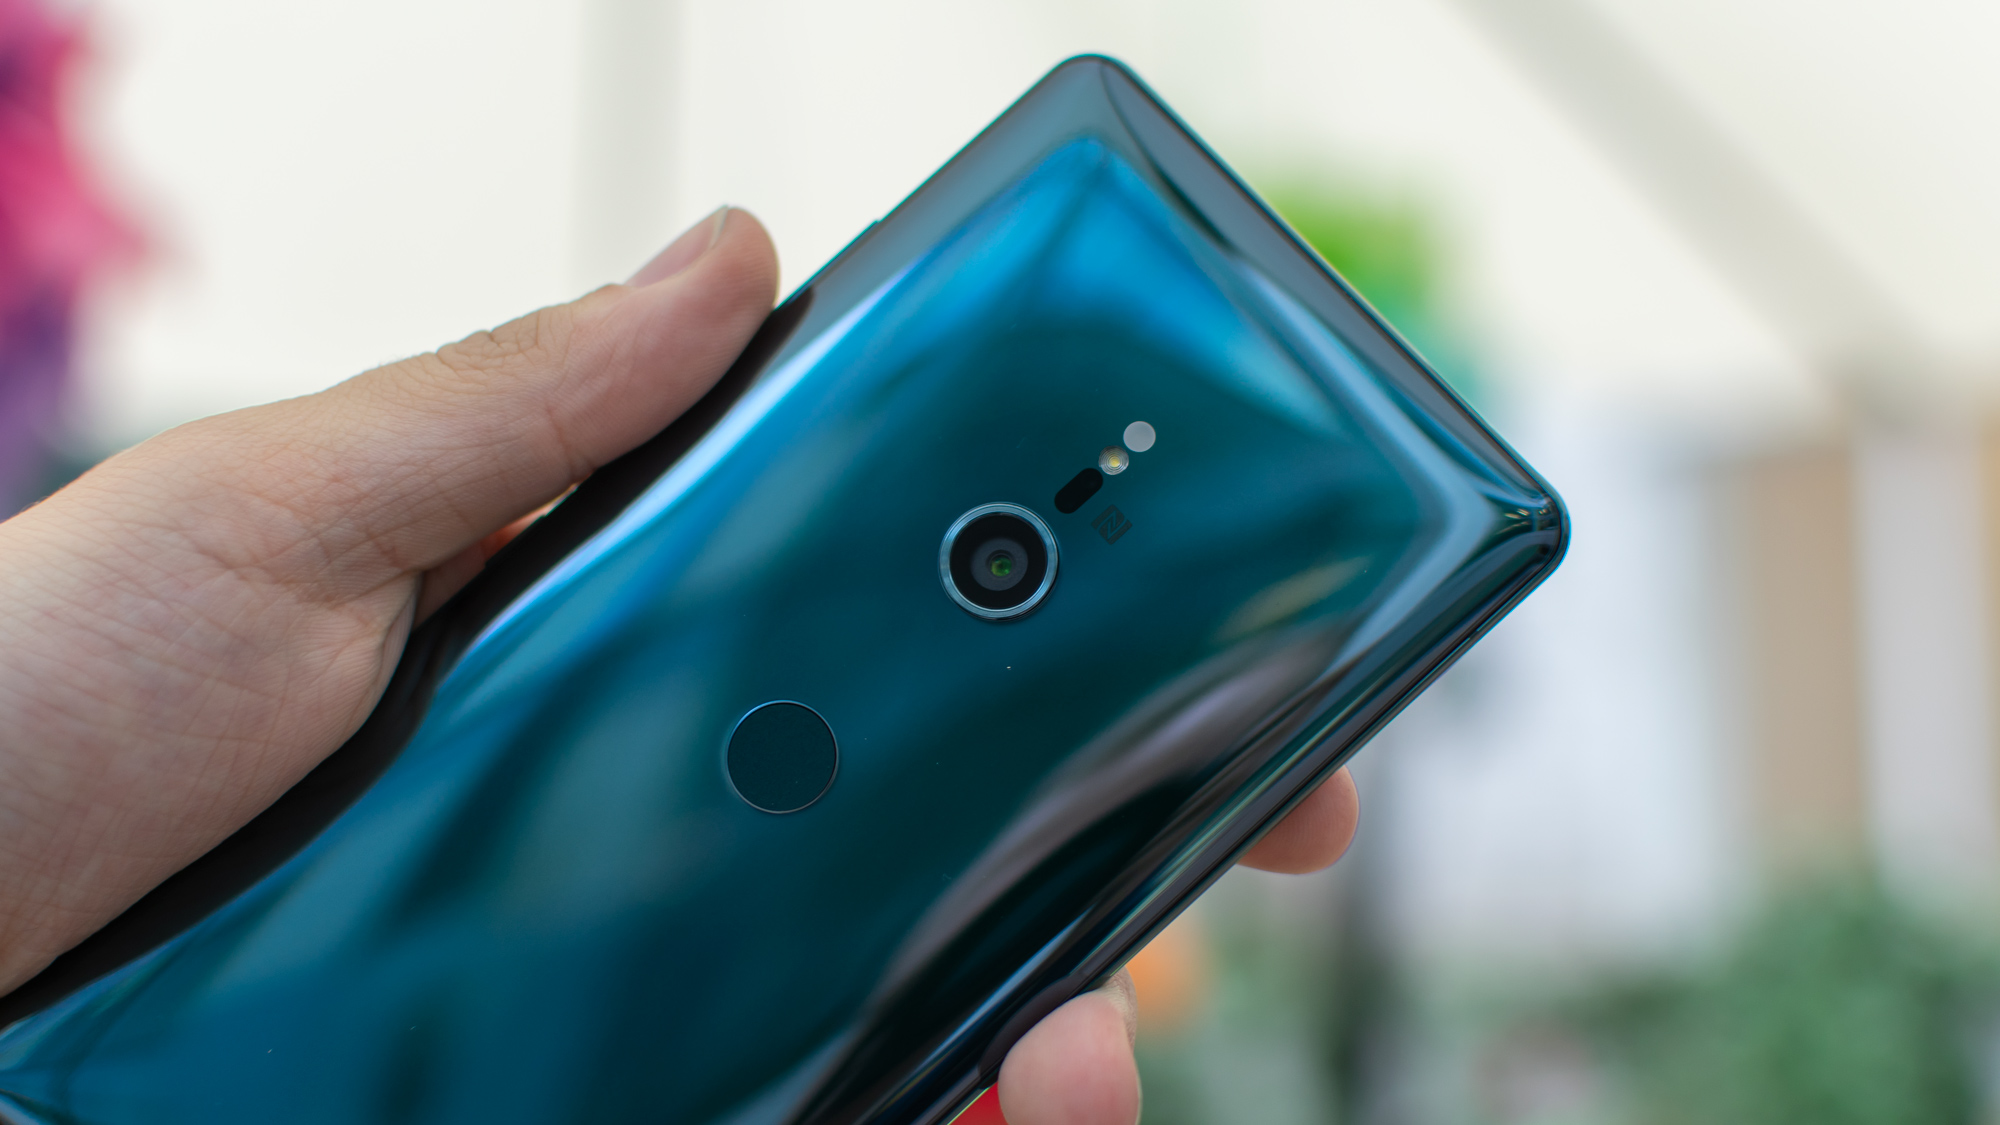 Sony Xperia XZ3 hands-on overview